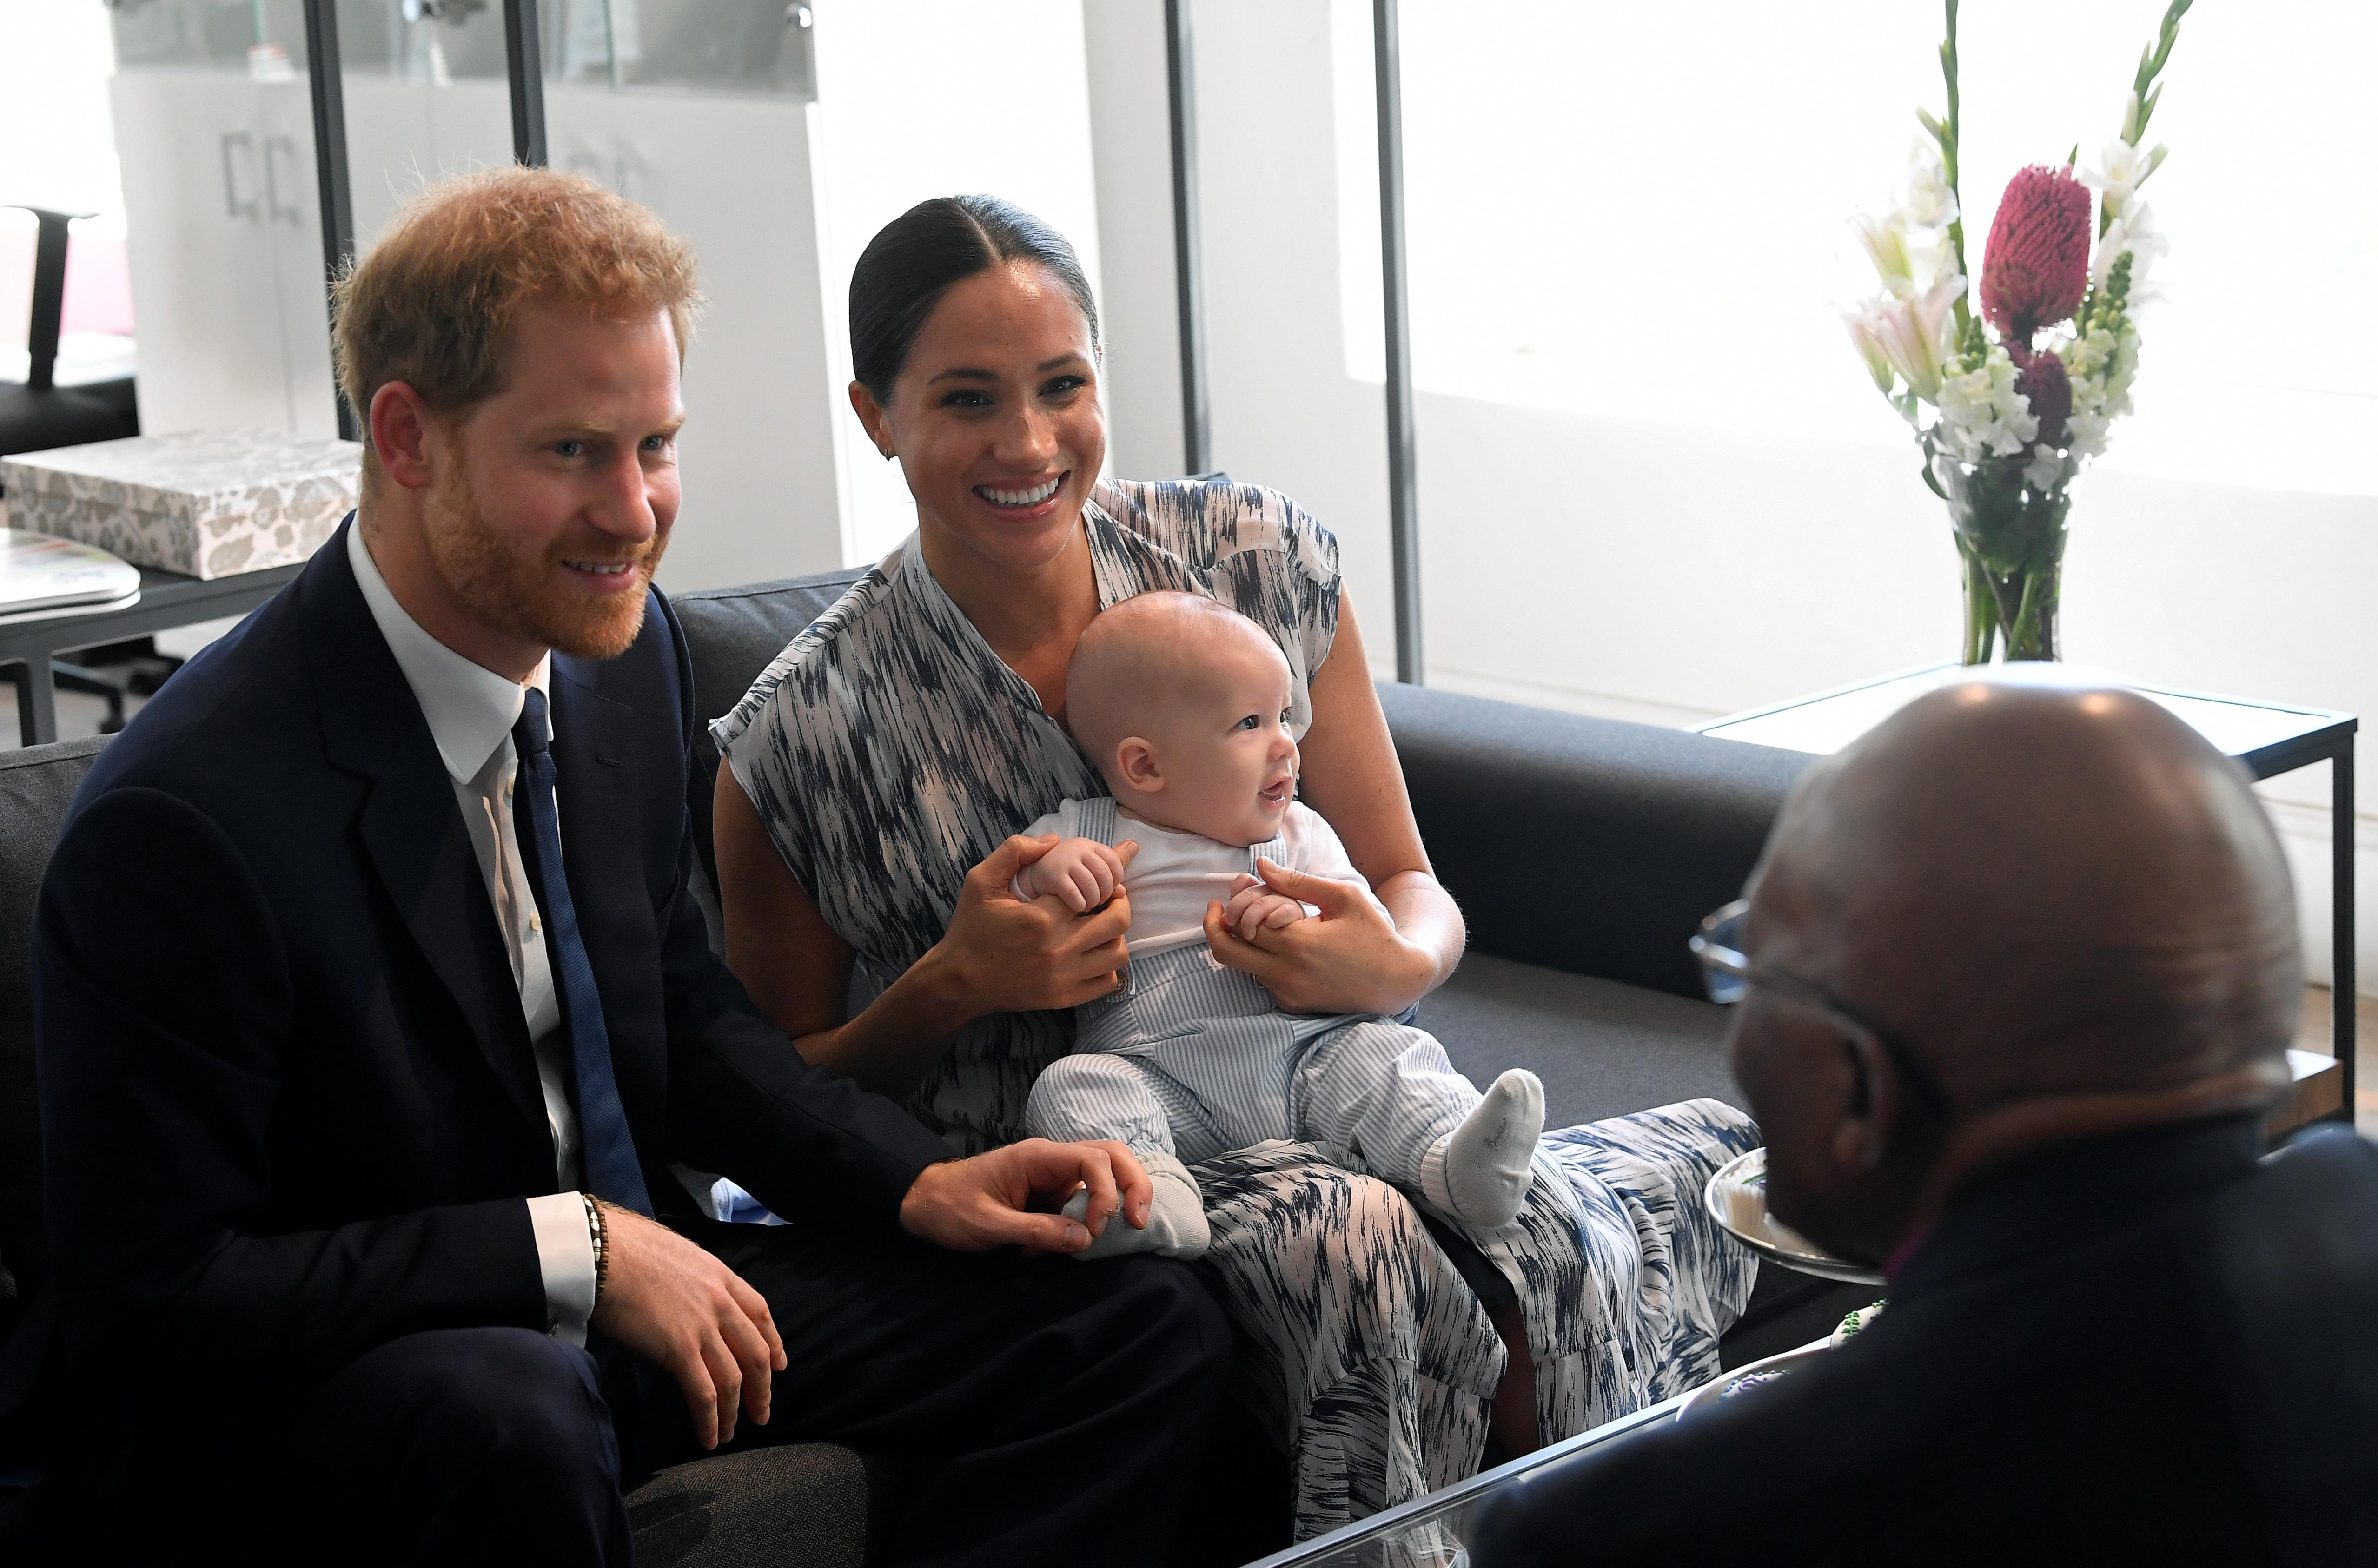 Prince Harry travels to Botswana for next leg of Africa tour